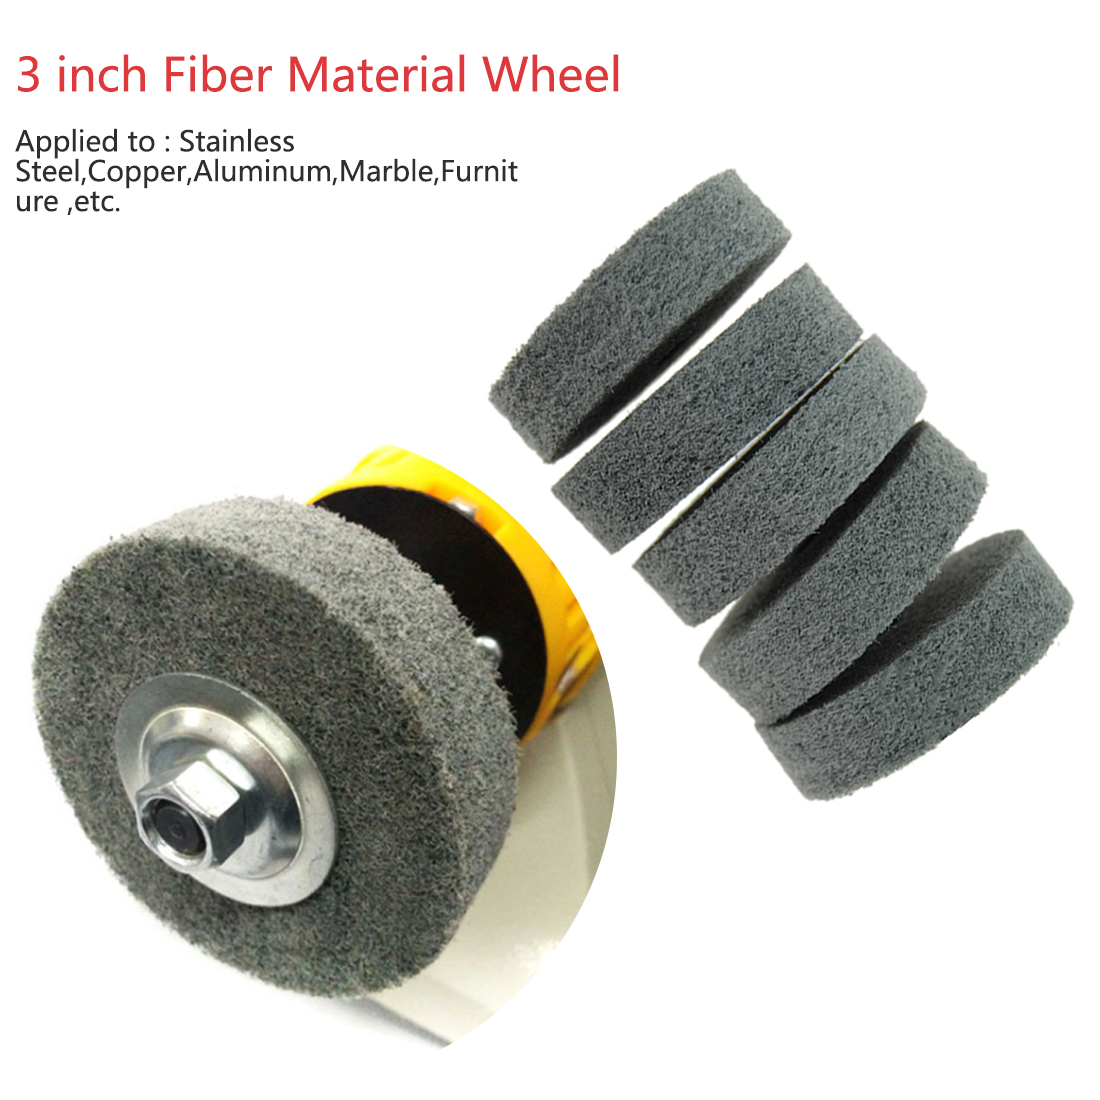 Original Imported Iron Instrument Grinding And Polishing 75*19*10mm Nylon Wheel Fiber Wheel Suitable For Dremel Tools